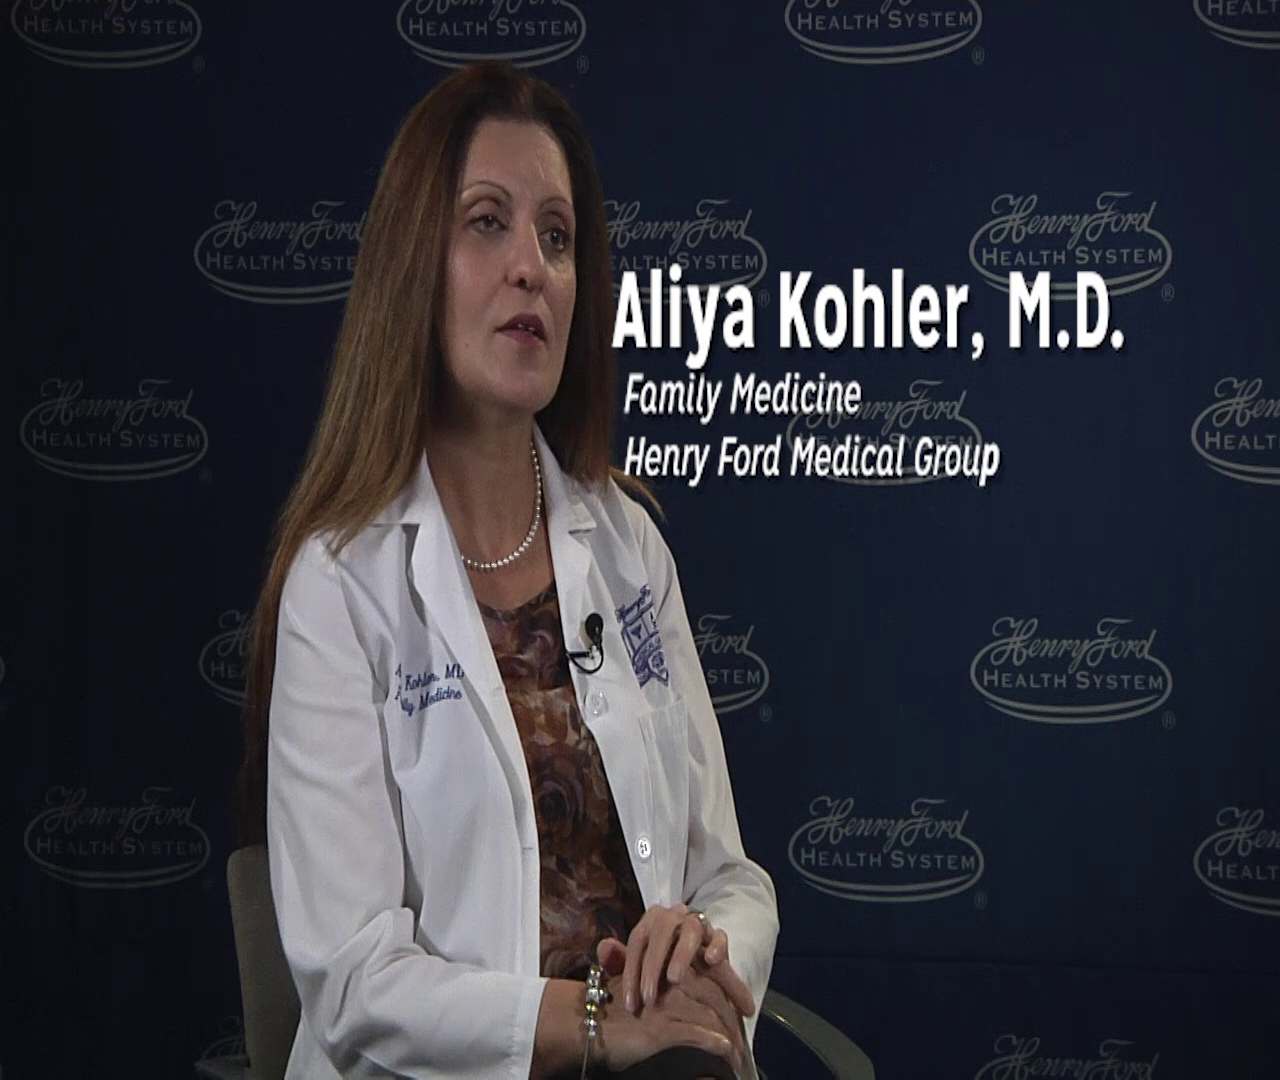 Dr. Kohler talks about her practice